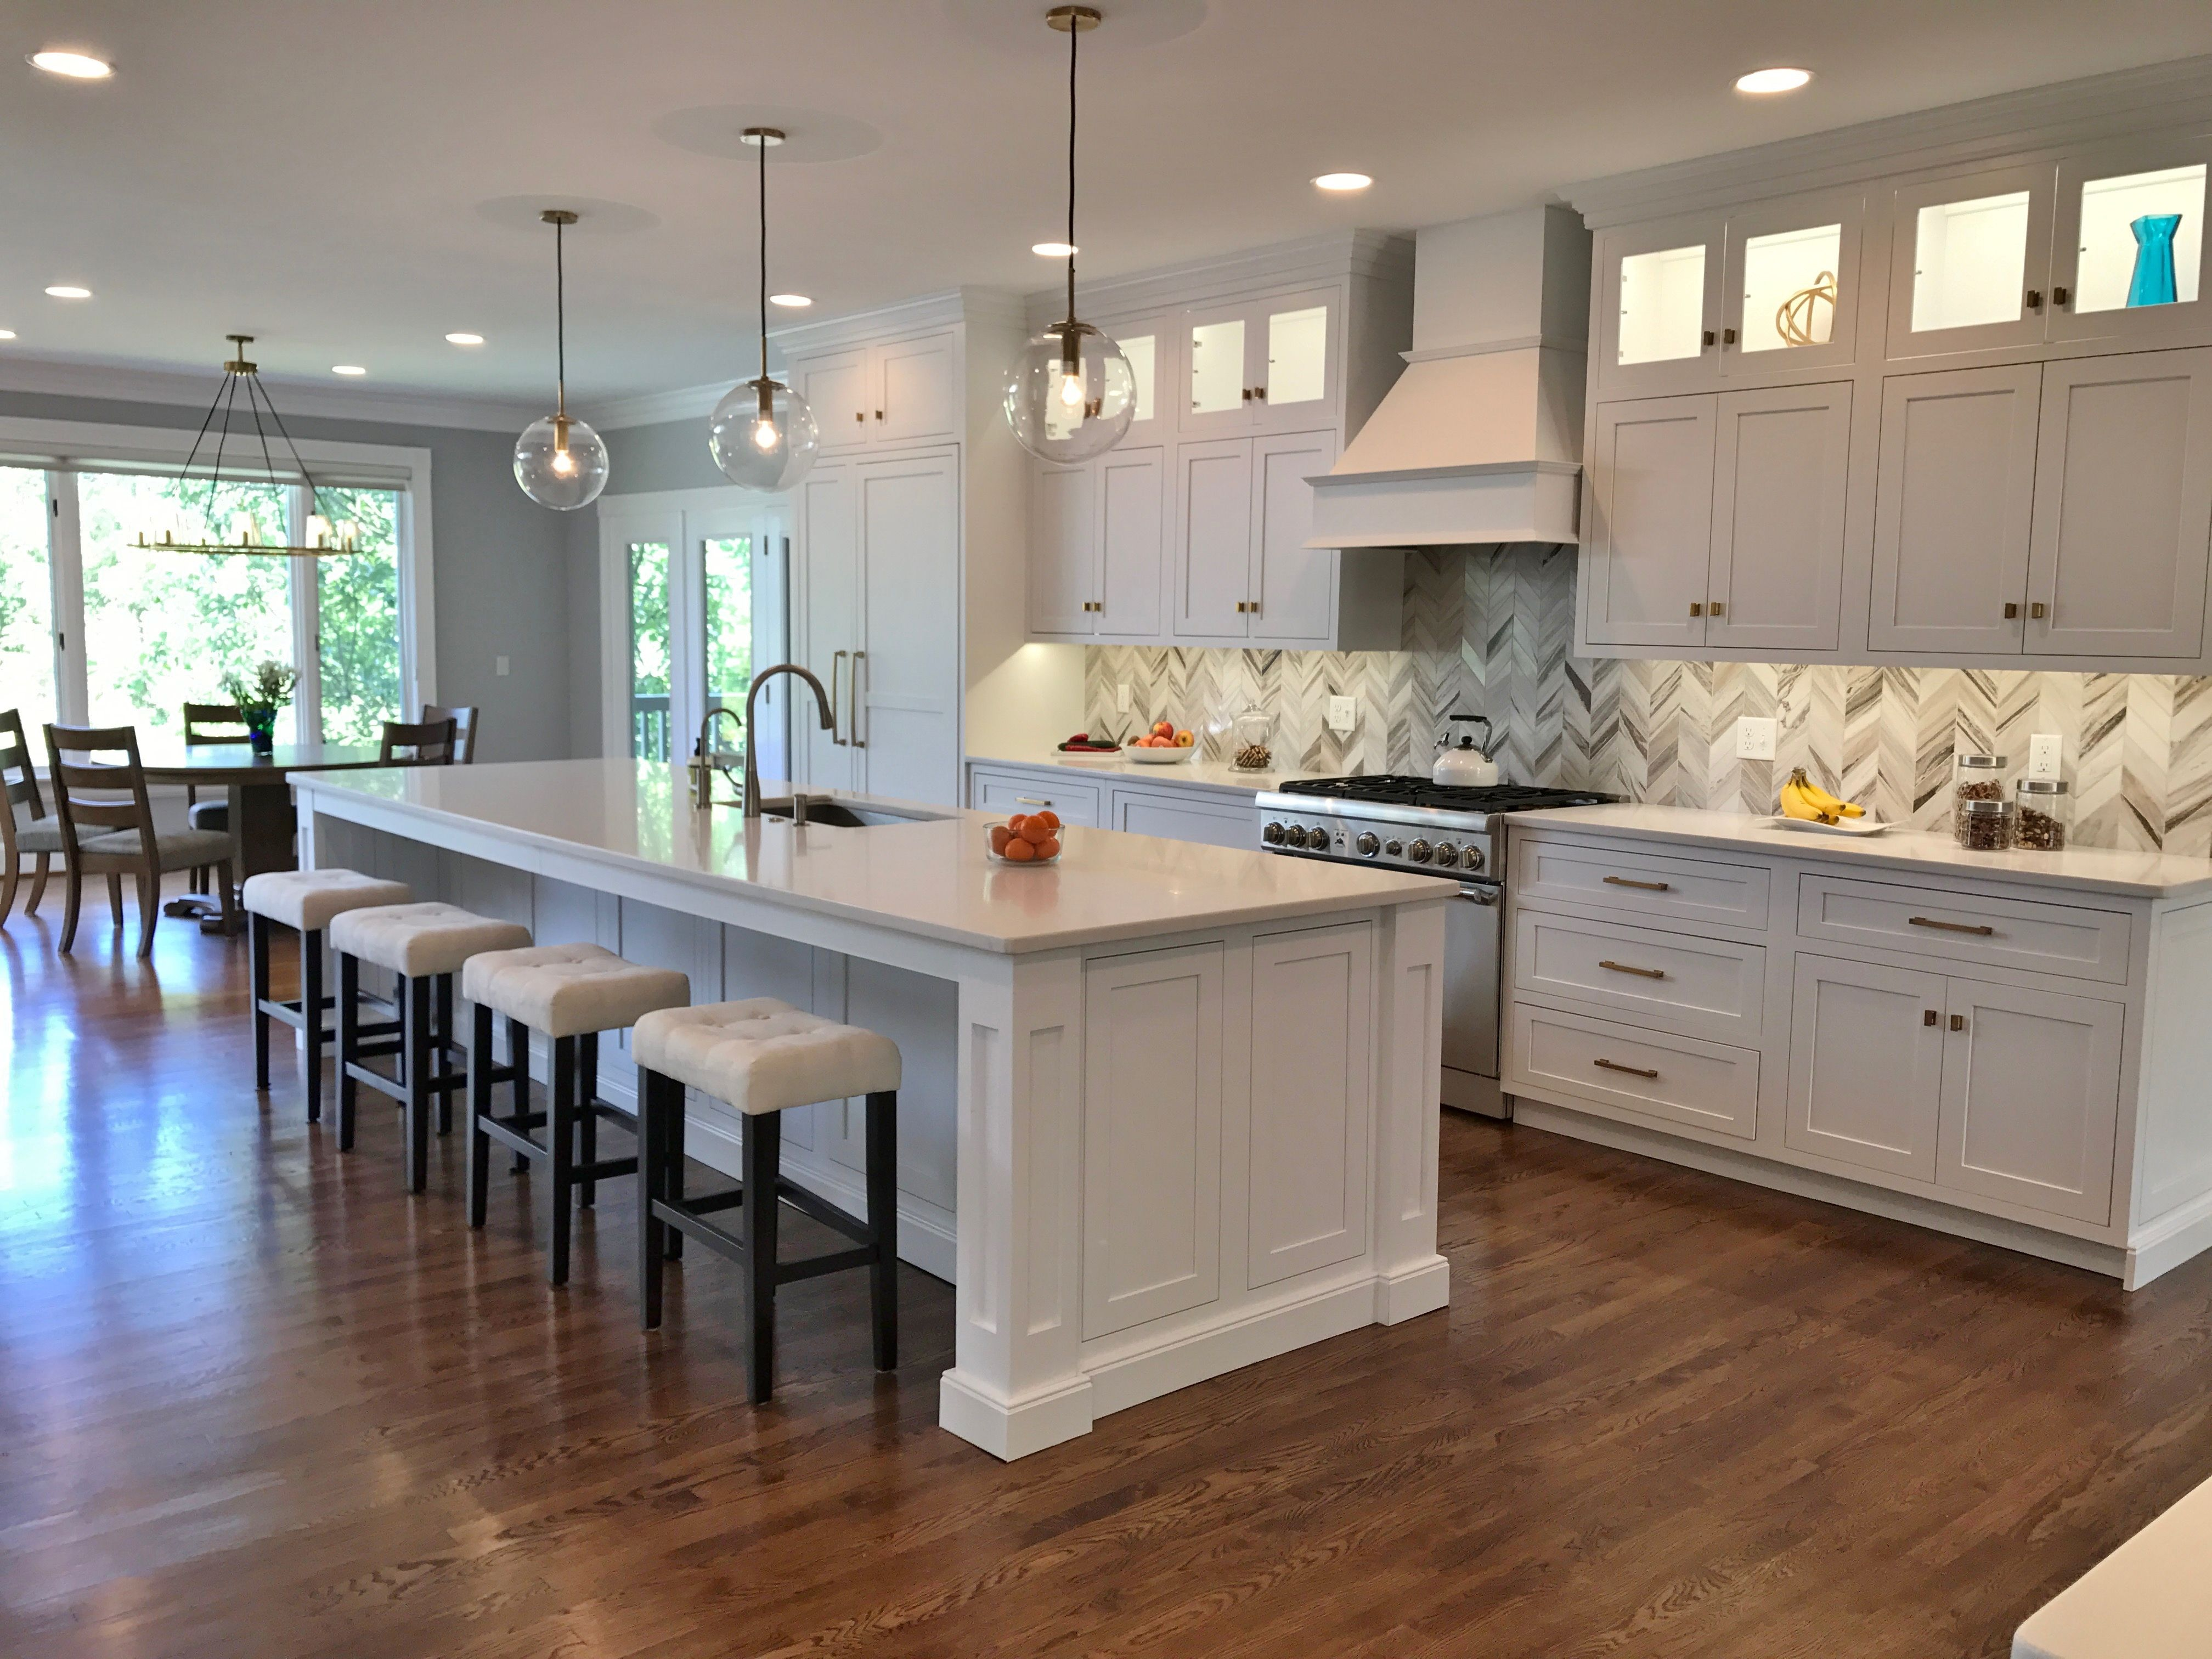 Kitchen Remodel By The Finn Team In Cincinnati Restoration Hardware Light Fixtures White Inset Shiloh Cabinets Refinished Hardwood Floors Gold